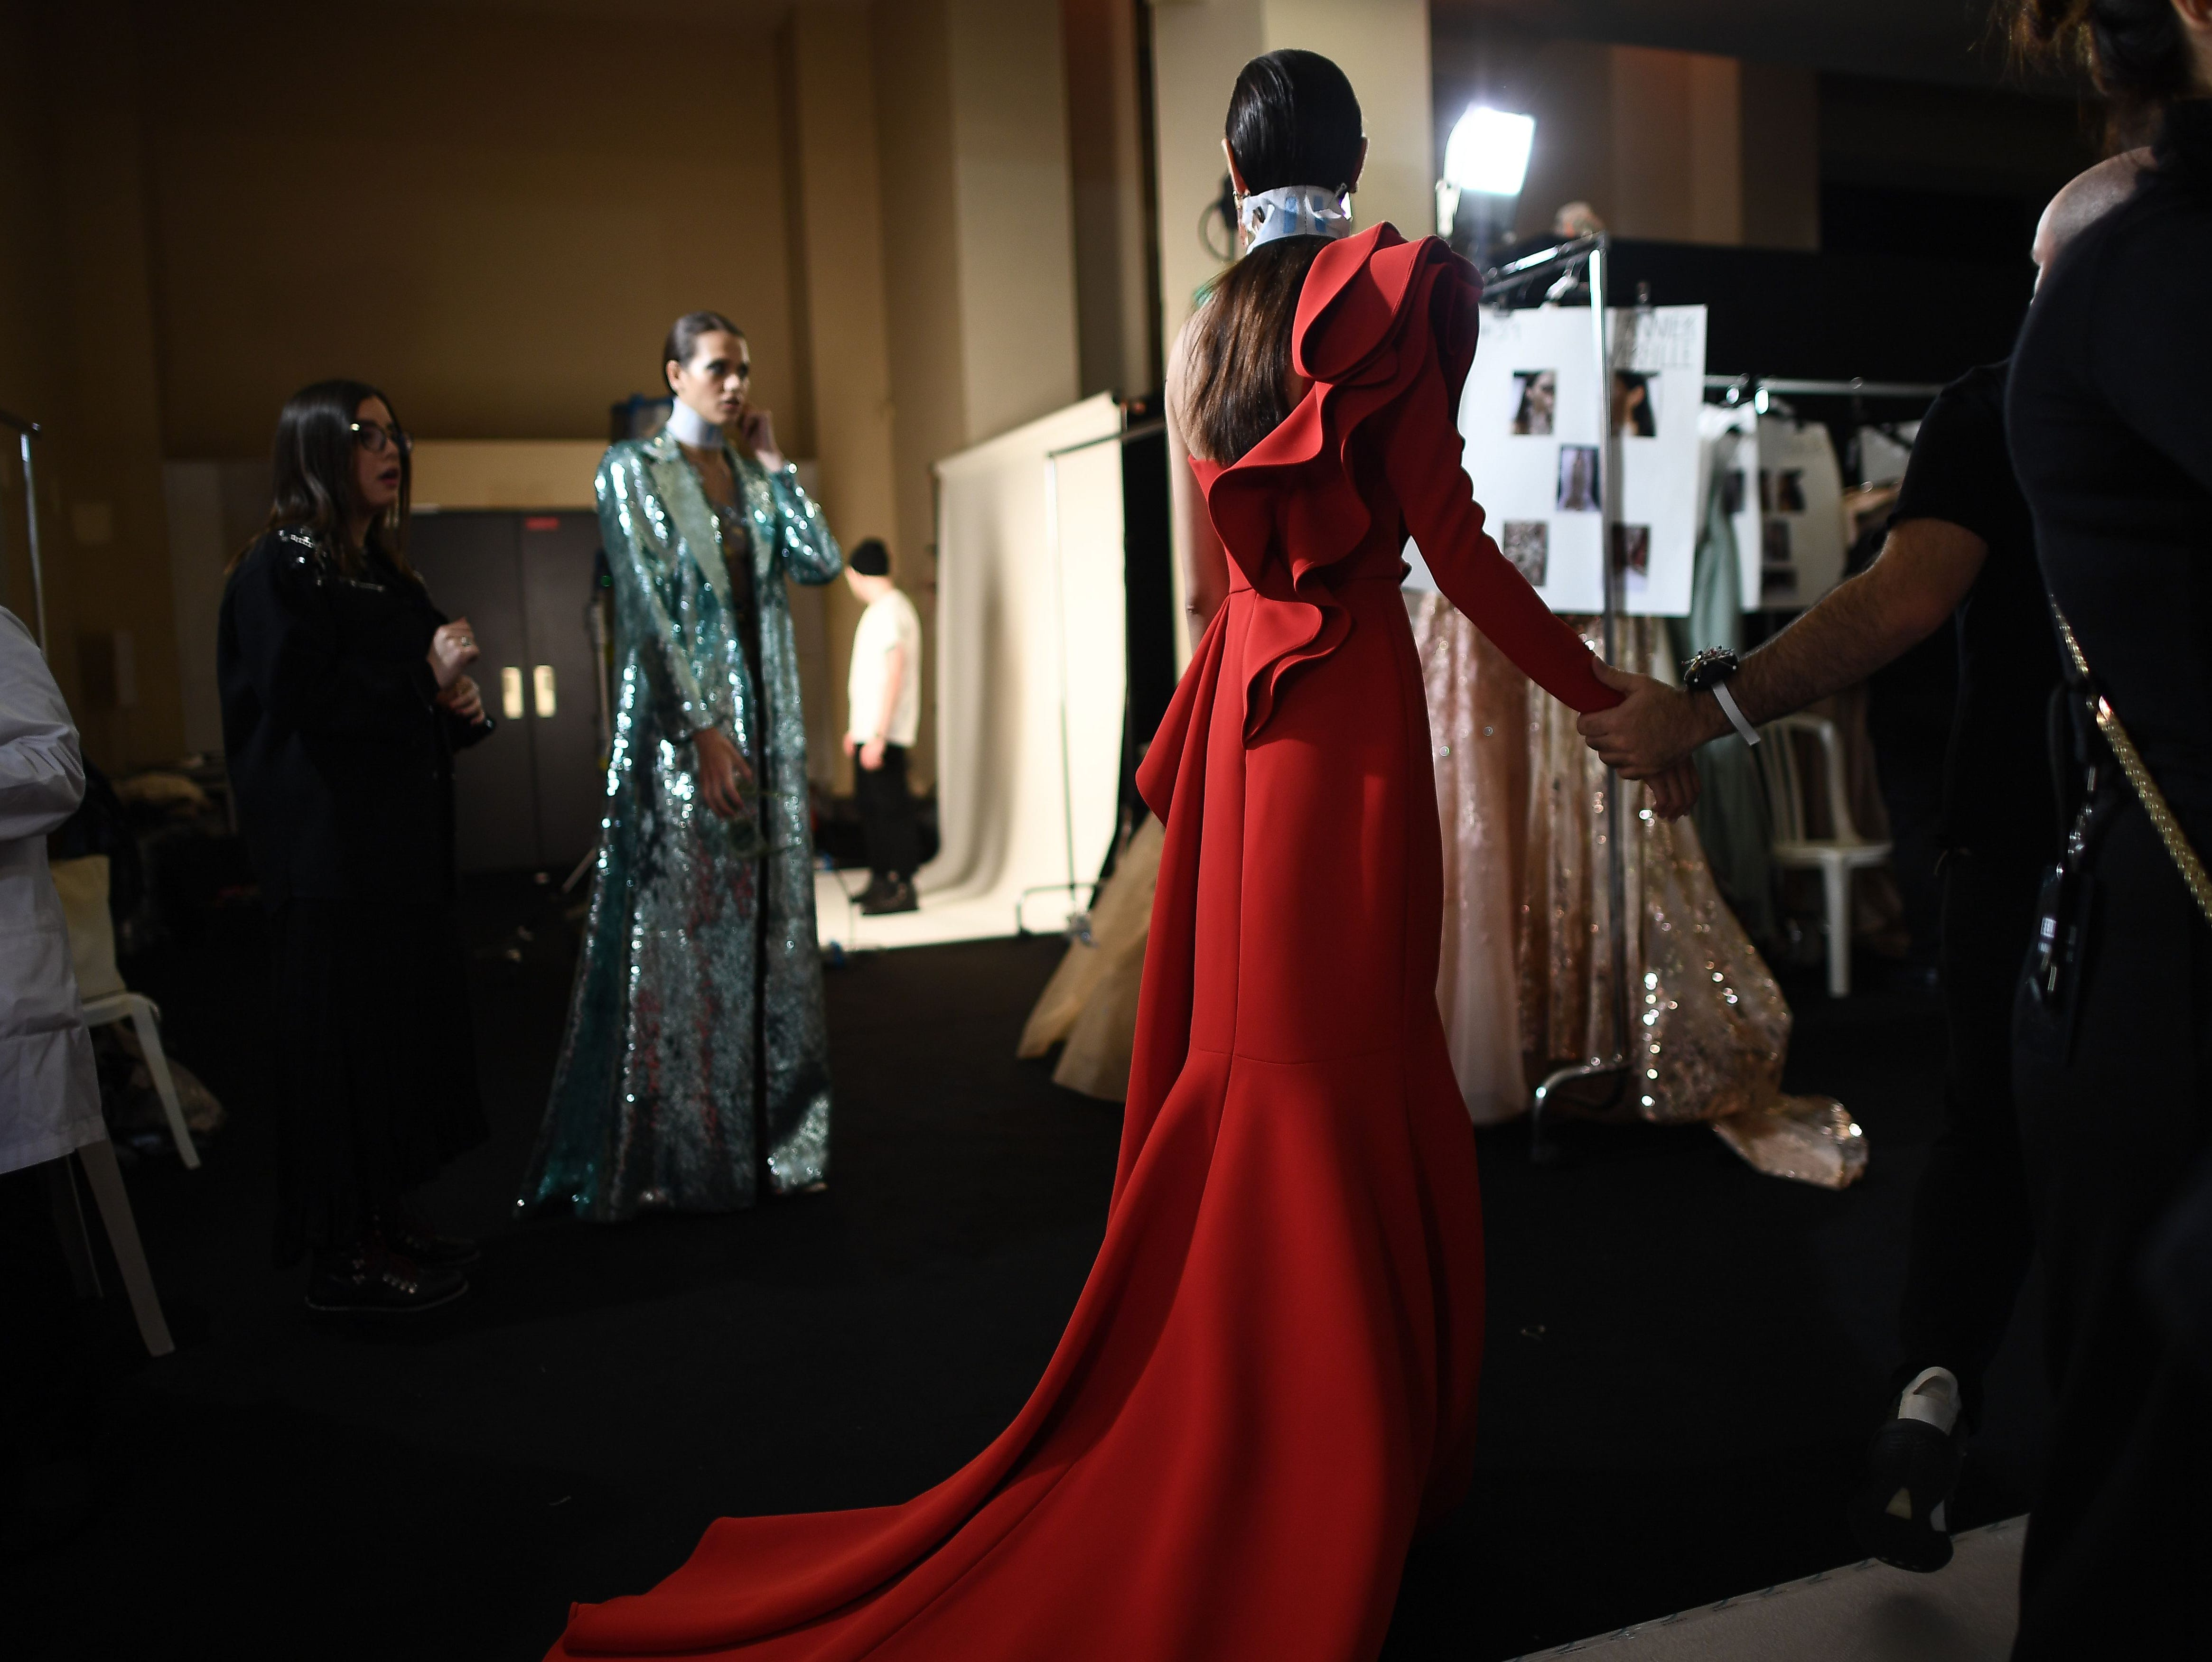 Models get ready prior to the Elie Saab 2019 Spring-Summer Haute Couture collection fashion show in Paris, on January 23, 2019.